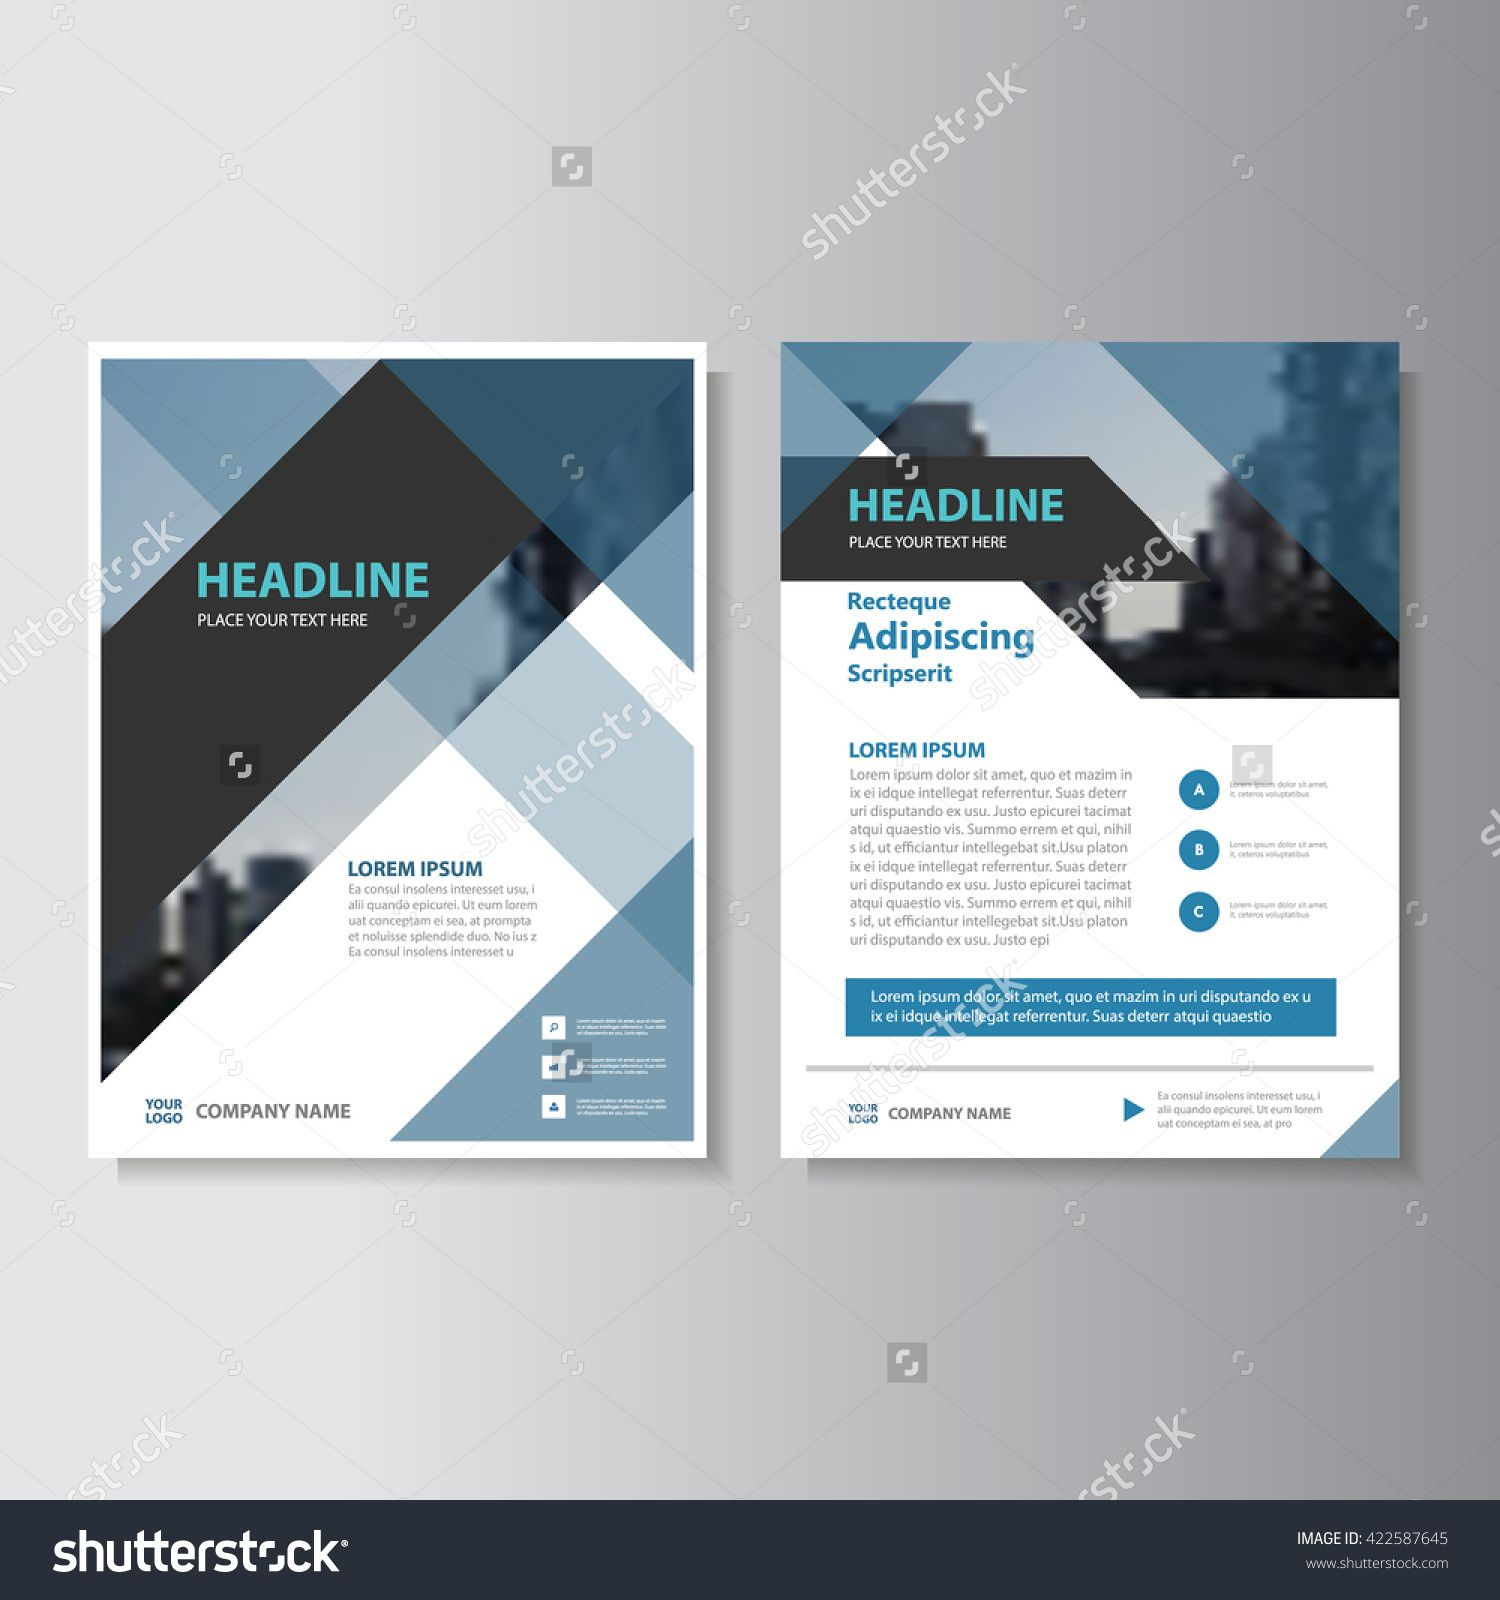 Marvelous Blue And Black Abstract Corporate Leaflet Brochure Flyer Template Design,  Book Cover Layout Design Vector Good Ideas